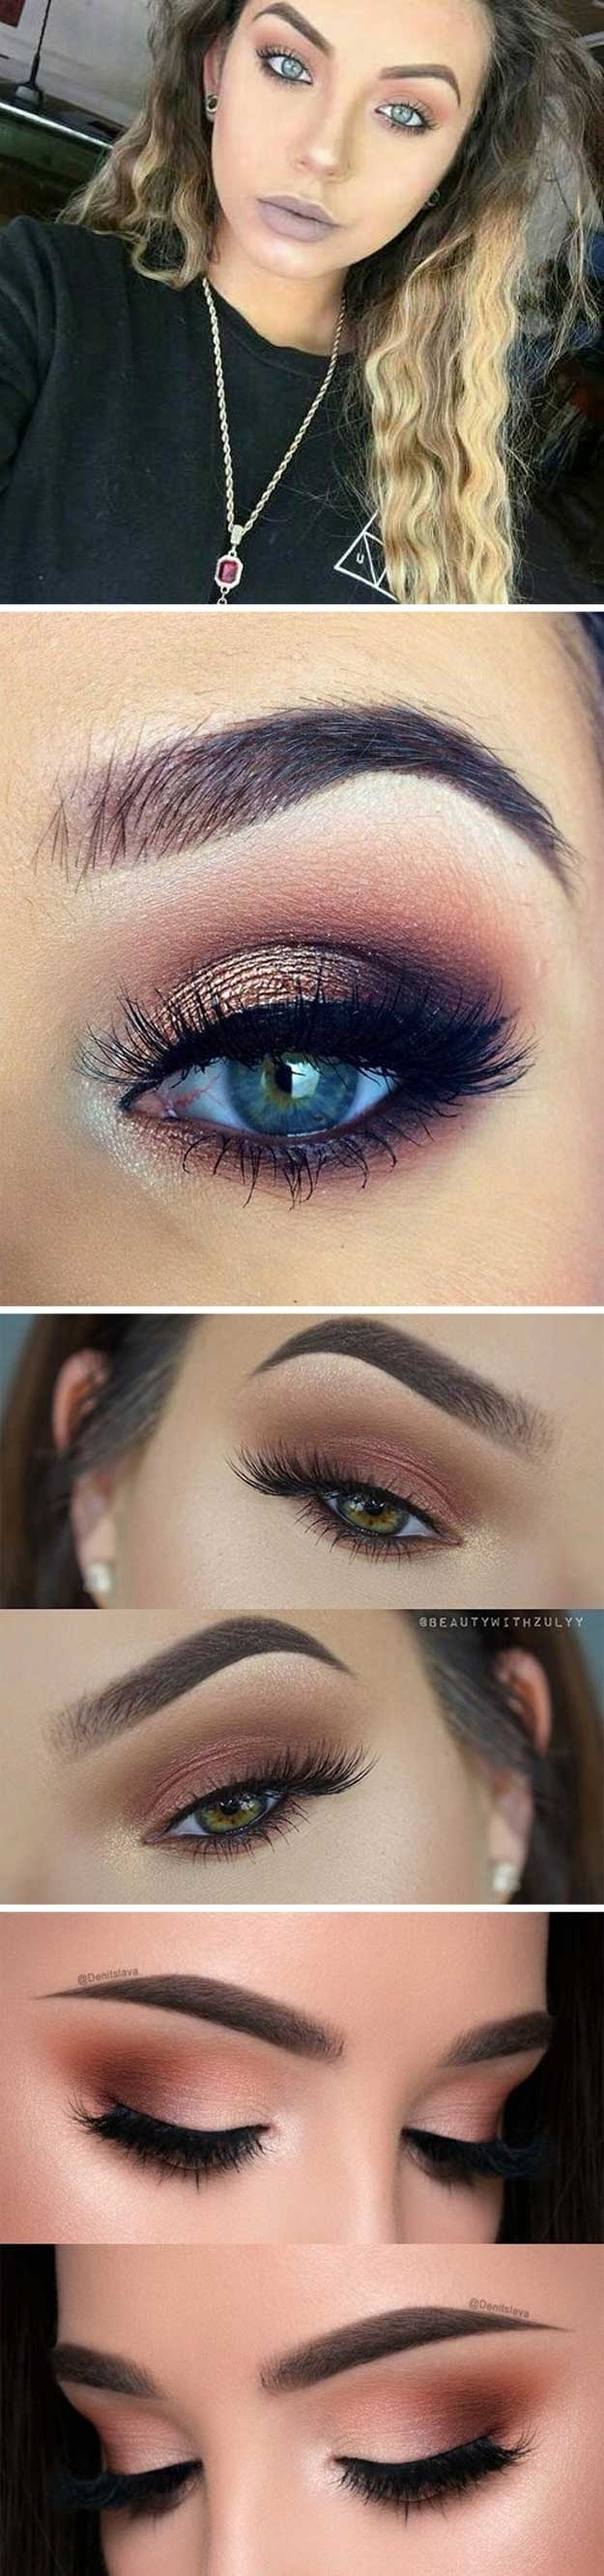 what color eyeshadow for blue eyes and dark brown hair